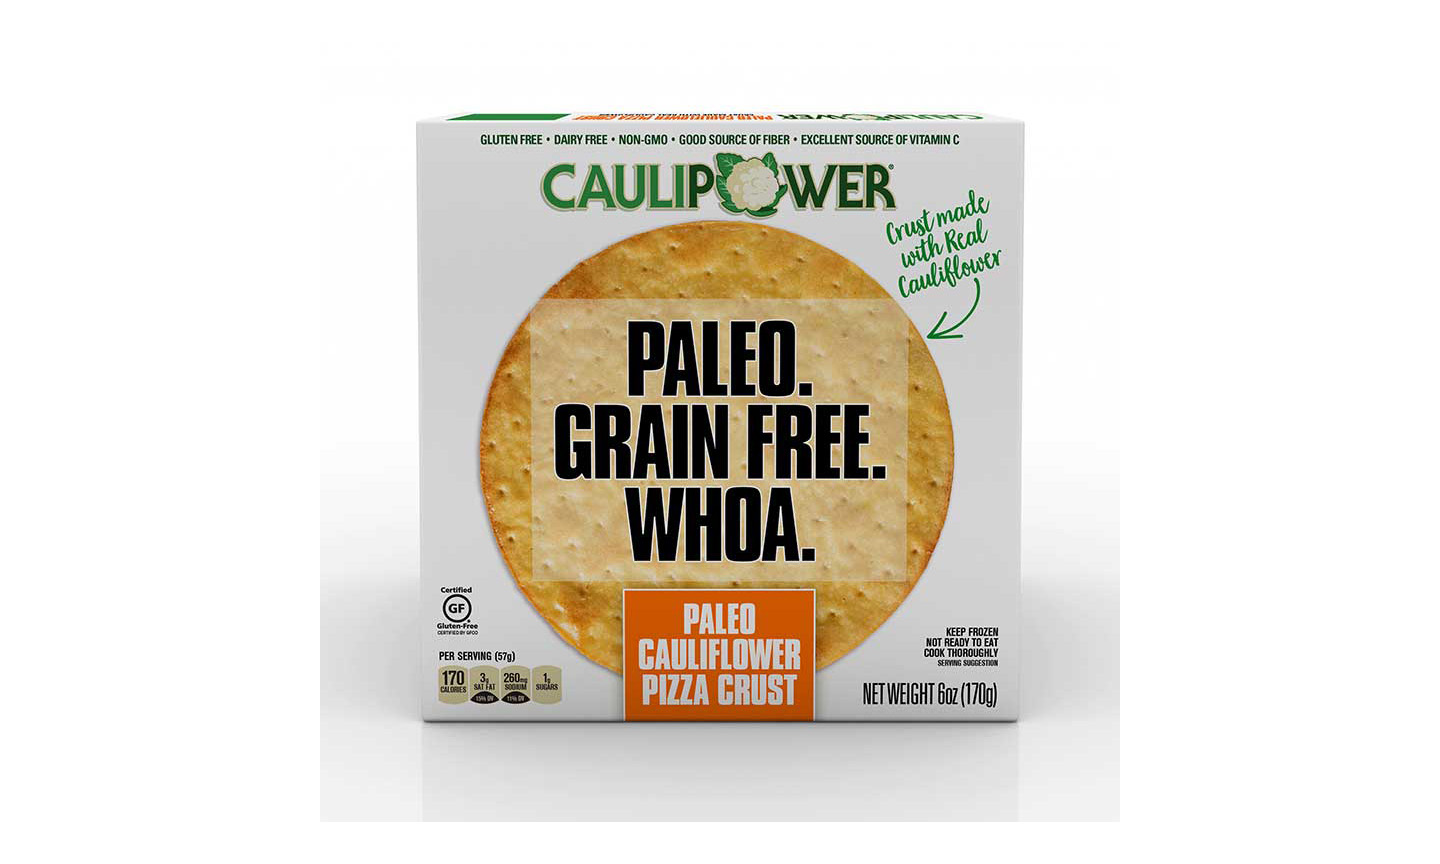 Caulipower's Frozen Paleo Cauliflower Pizza Crust